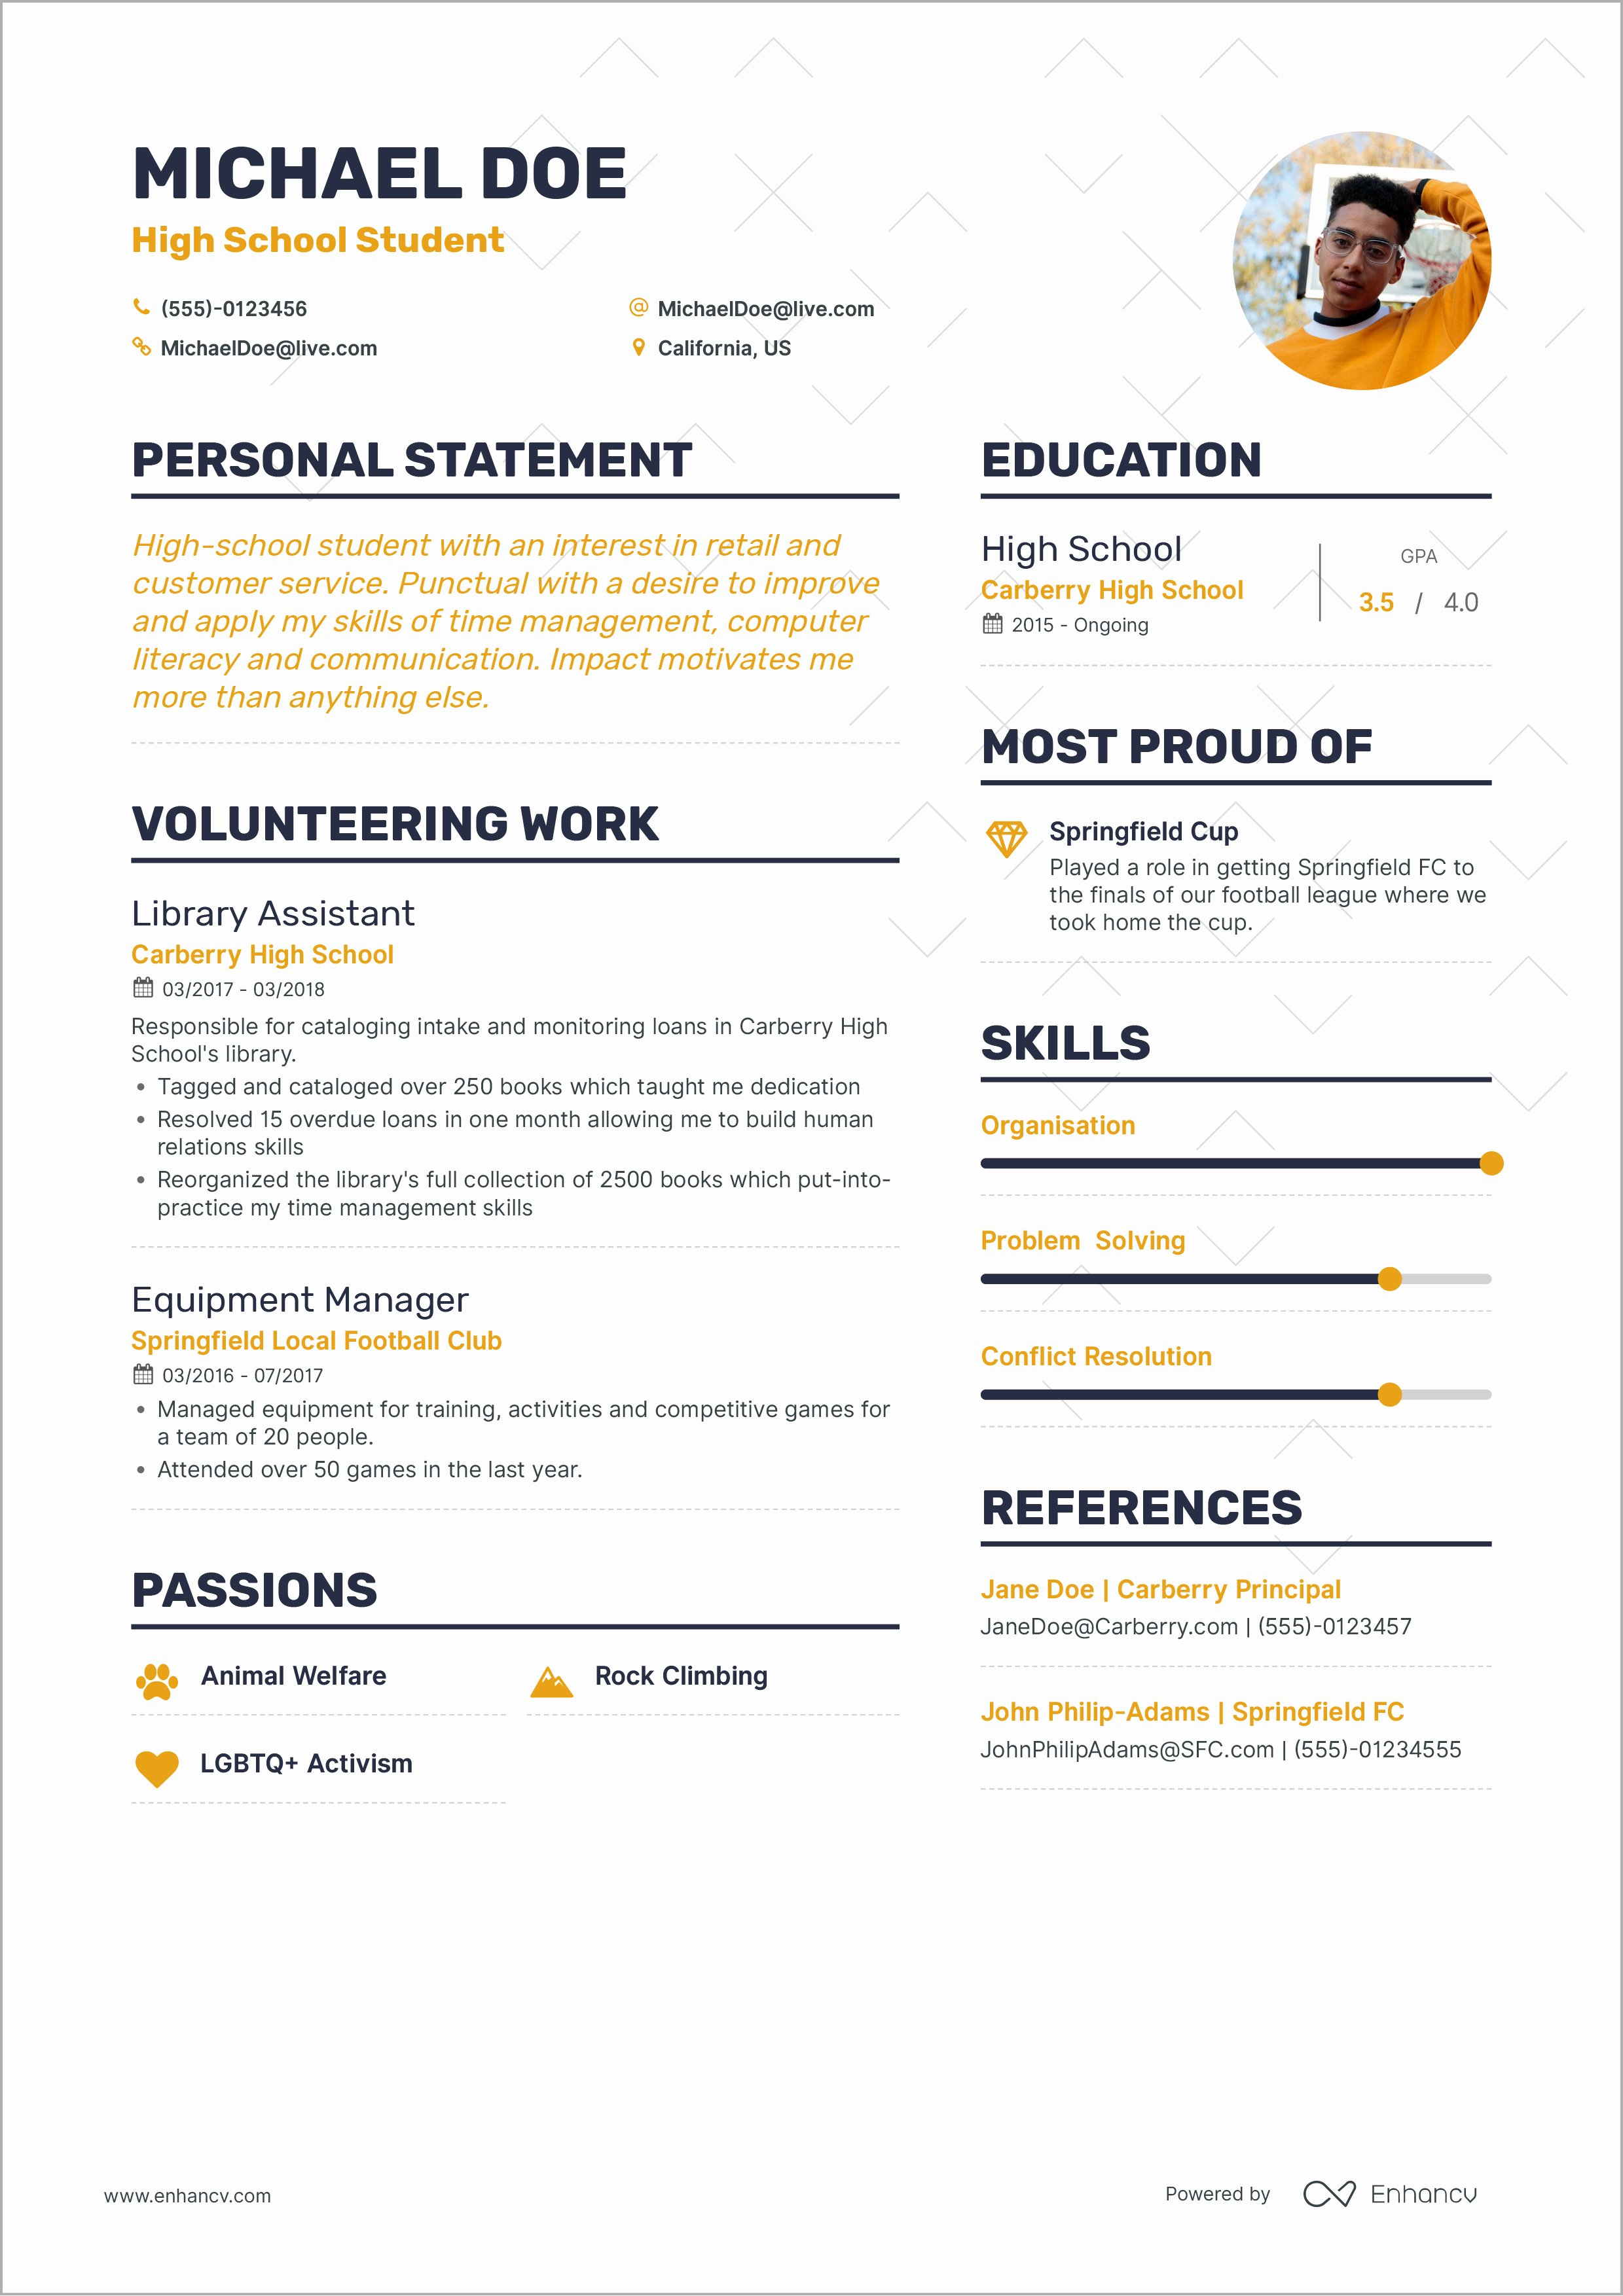 First Job Resume Template New How to Write Your First Job Resume Guide